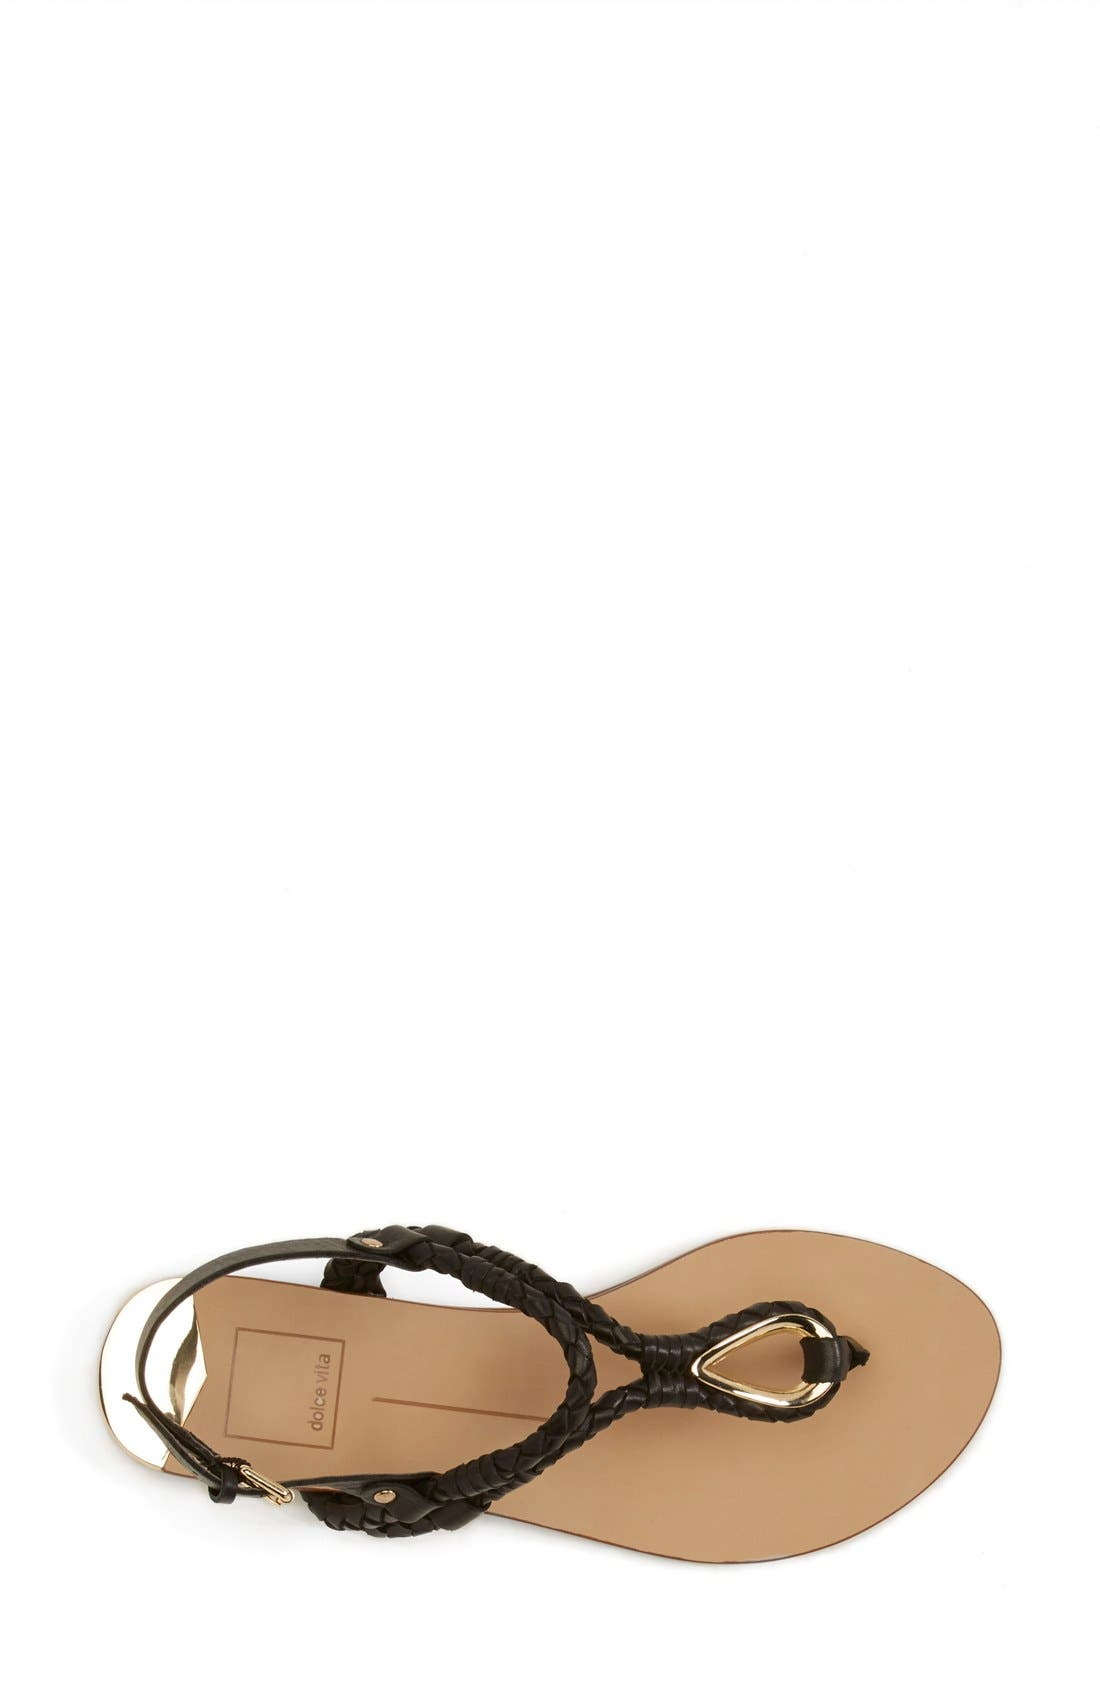 Alternate Image 3  - Dolce Vita 'Dixin' Thong Sandal (Women)